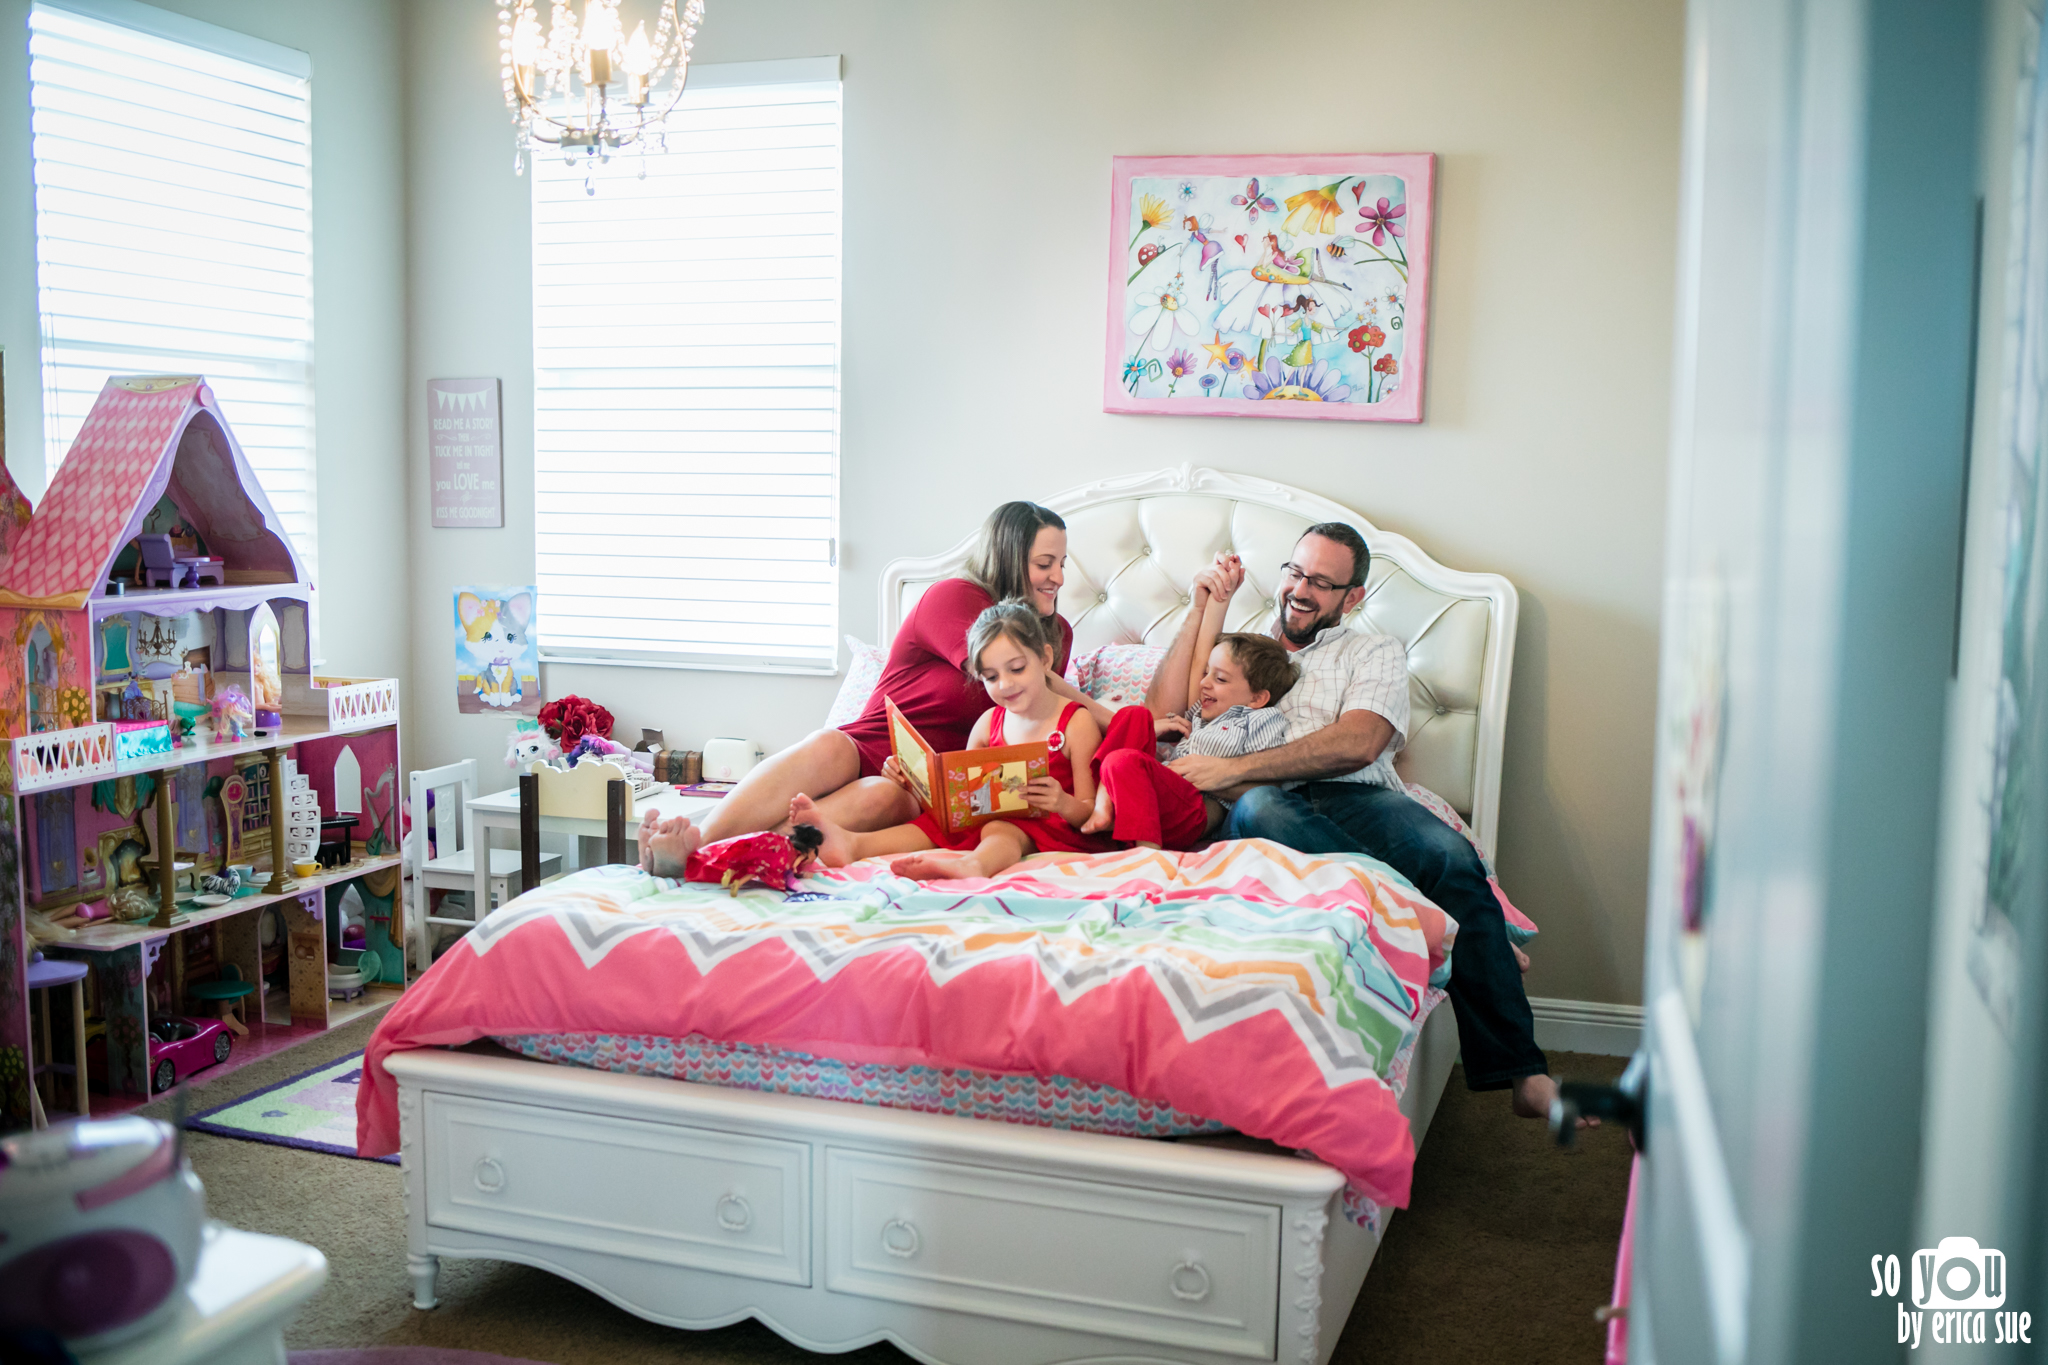 in-home-lifestyle-family-photography-so-you-by-erica-sue-parkland-6526.jpg